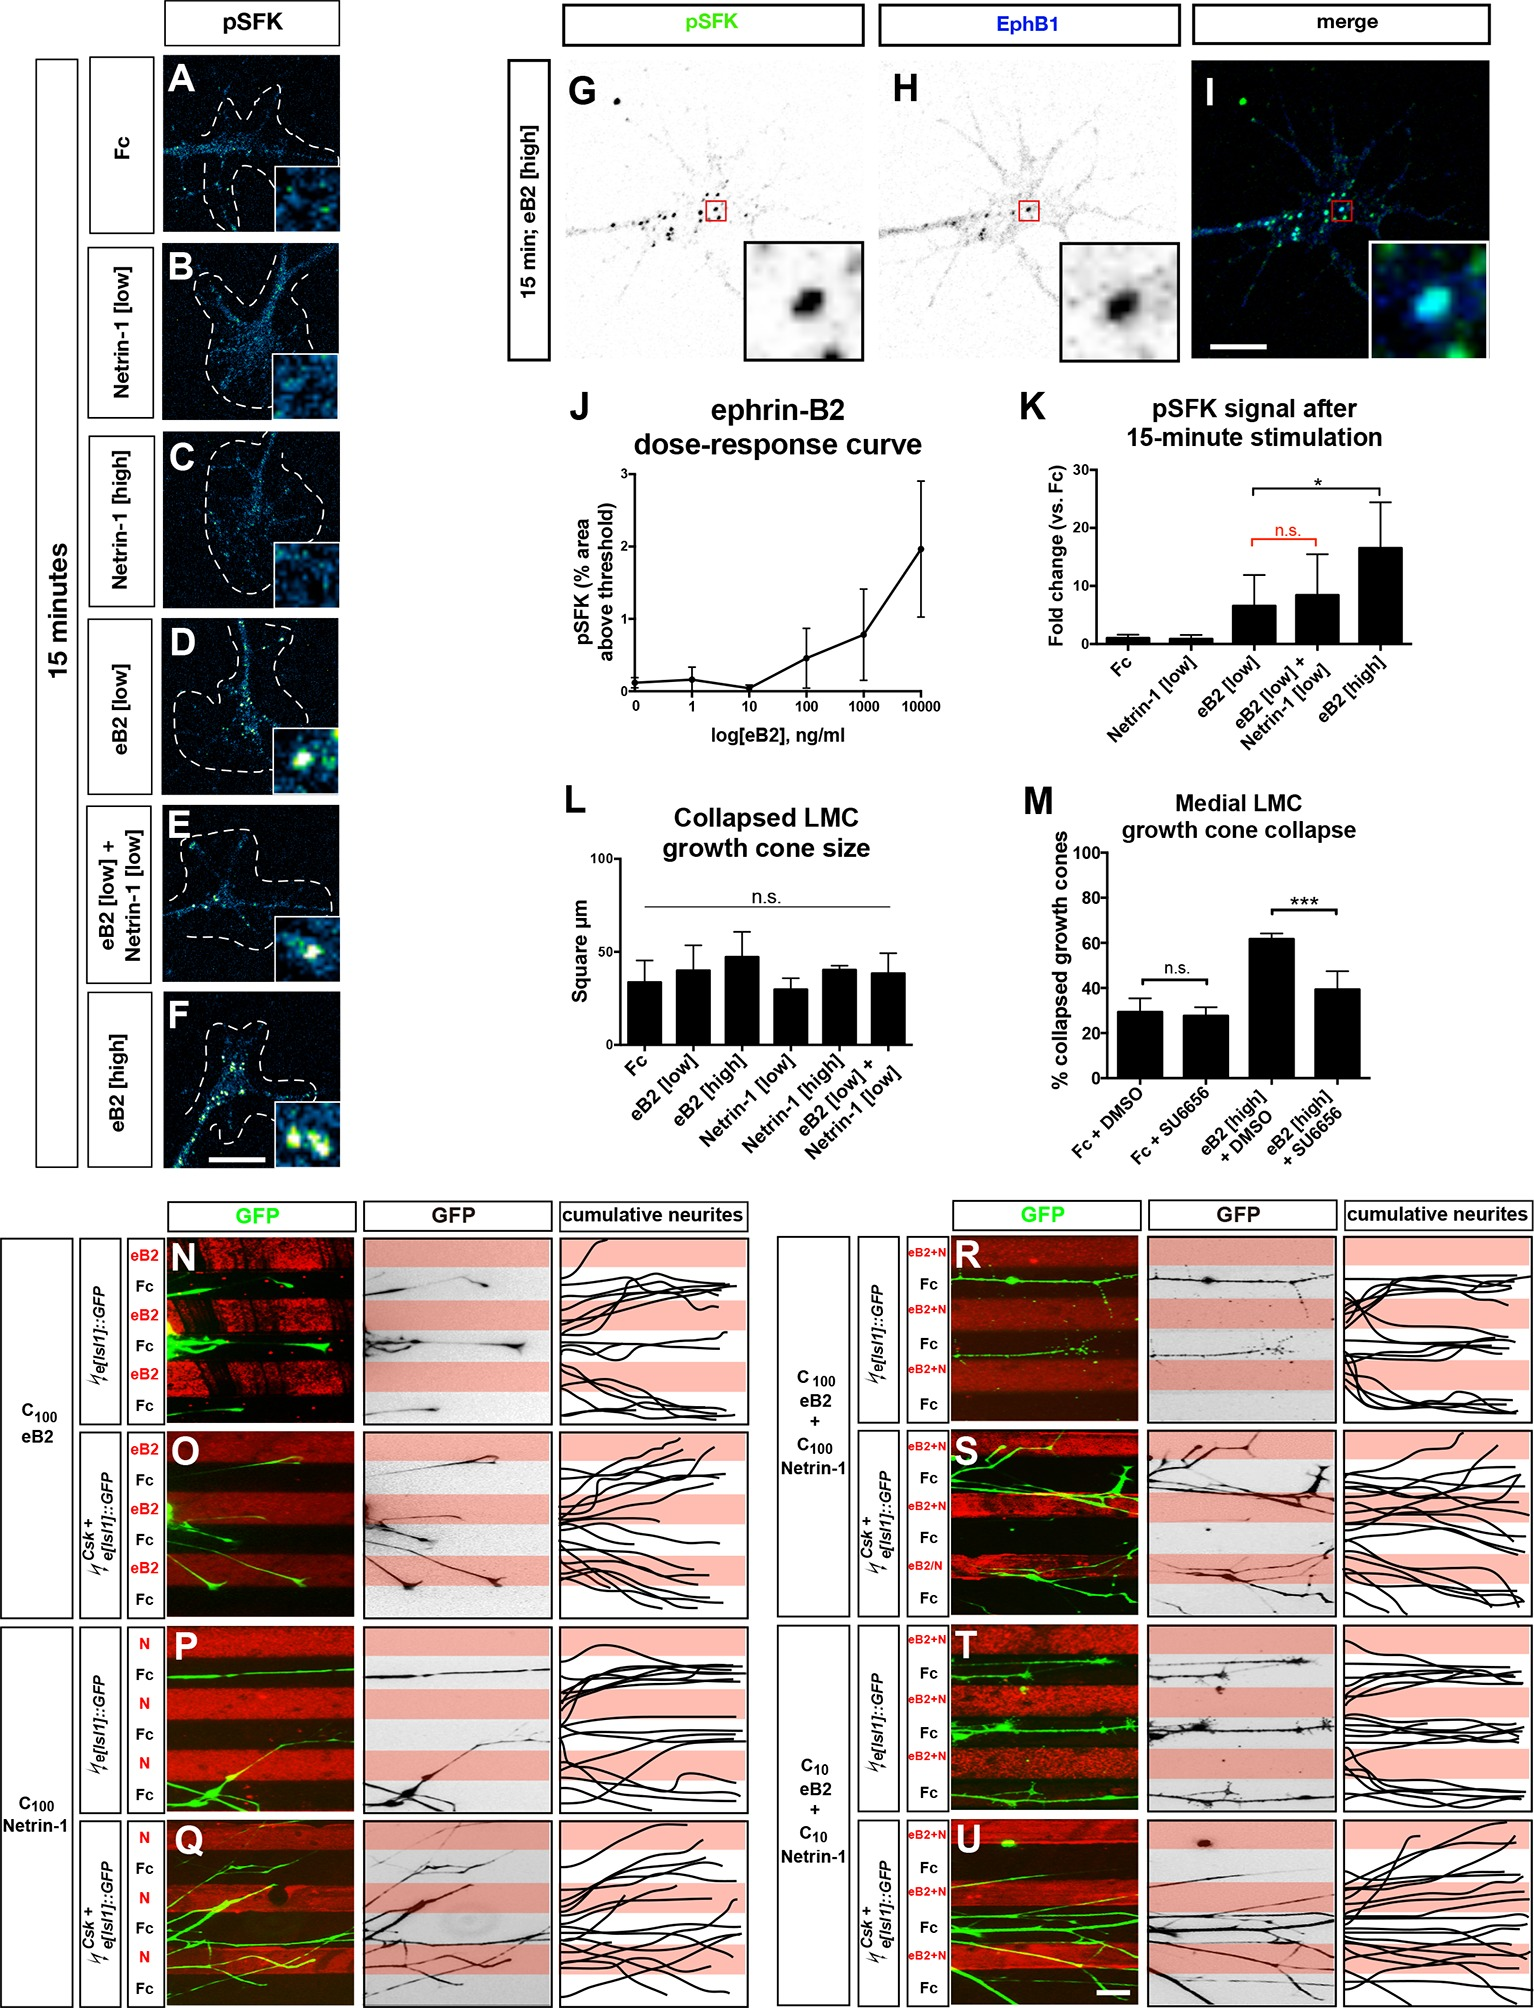 Synergistic integration of Netrin and ephrin axon guidance signals